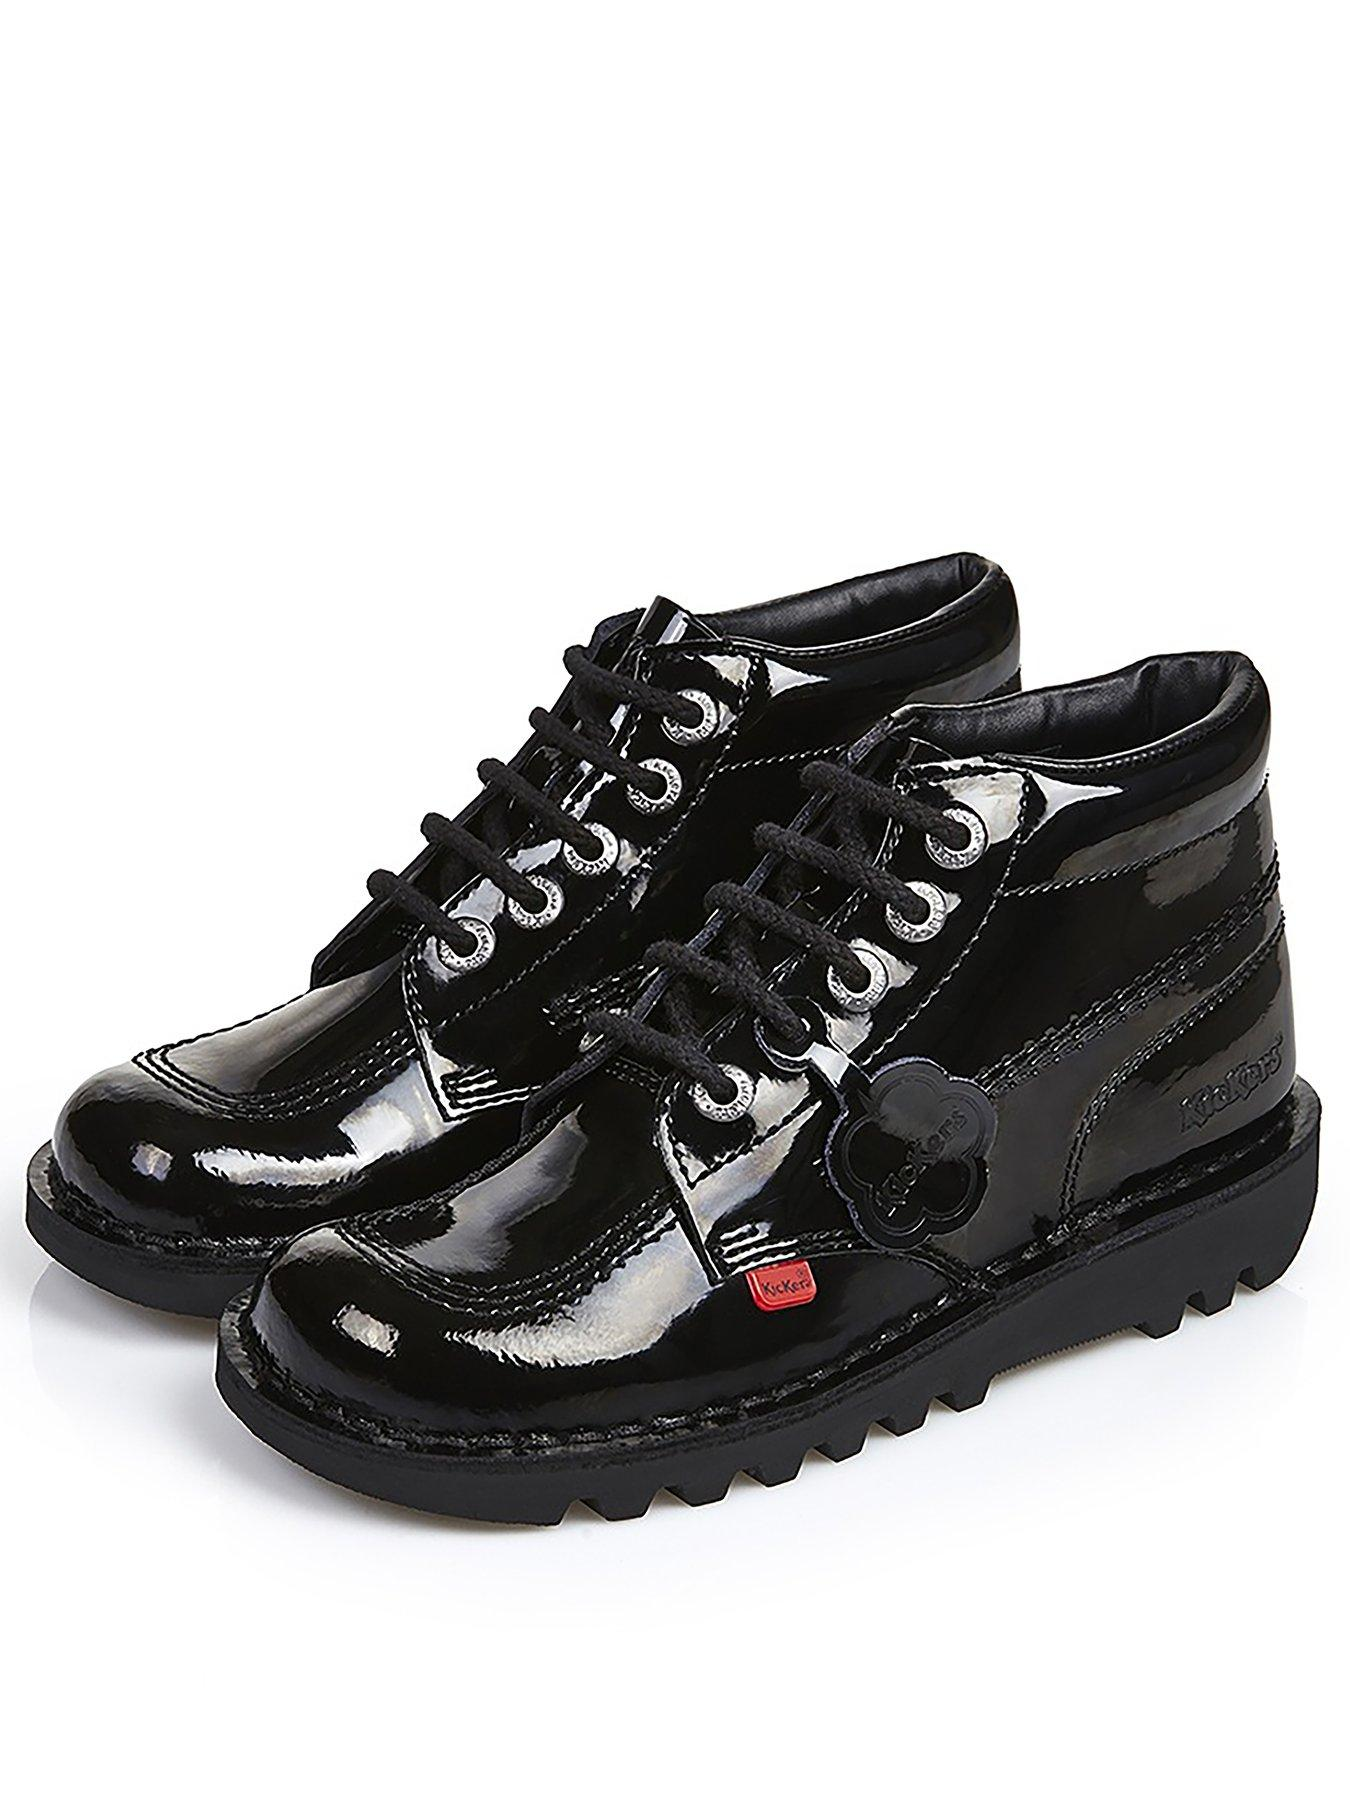 6 to 11 Black Kickers Mens Kick Hi M Core Leather Formal Boots Laced Shoes